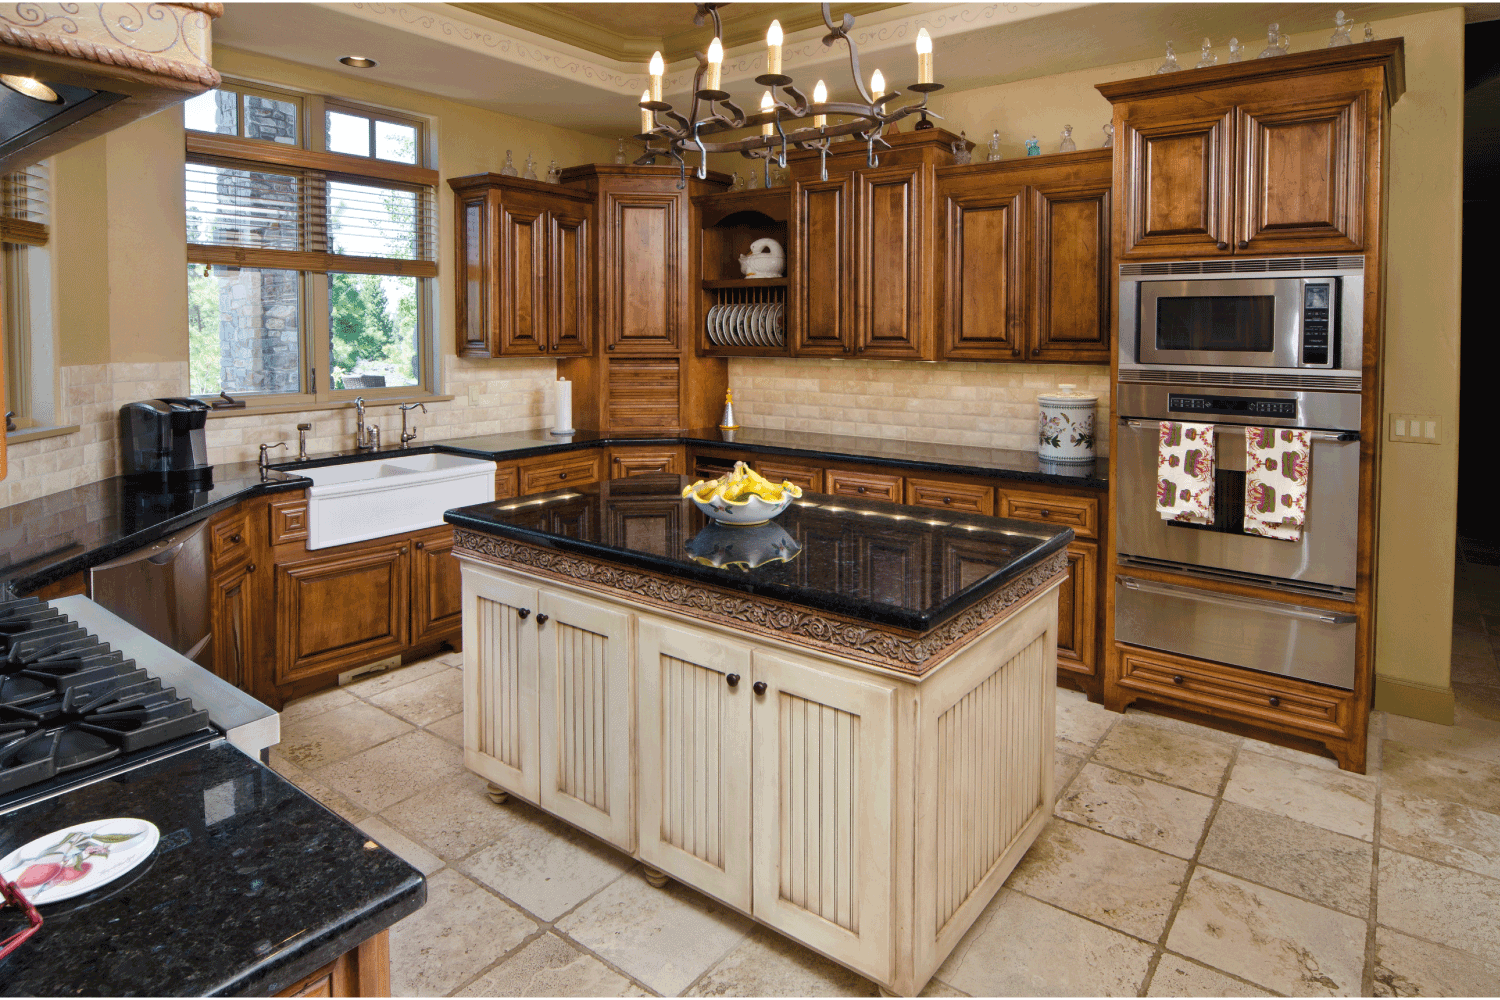 two tone farmhouse kitchen with island, granite countertops, wooden cabinets